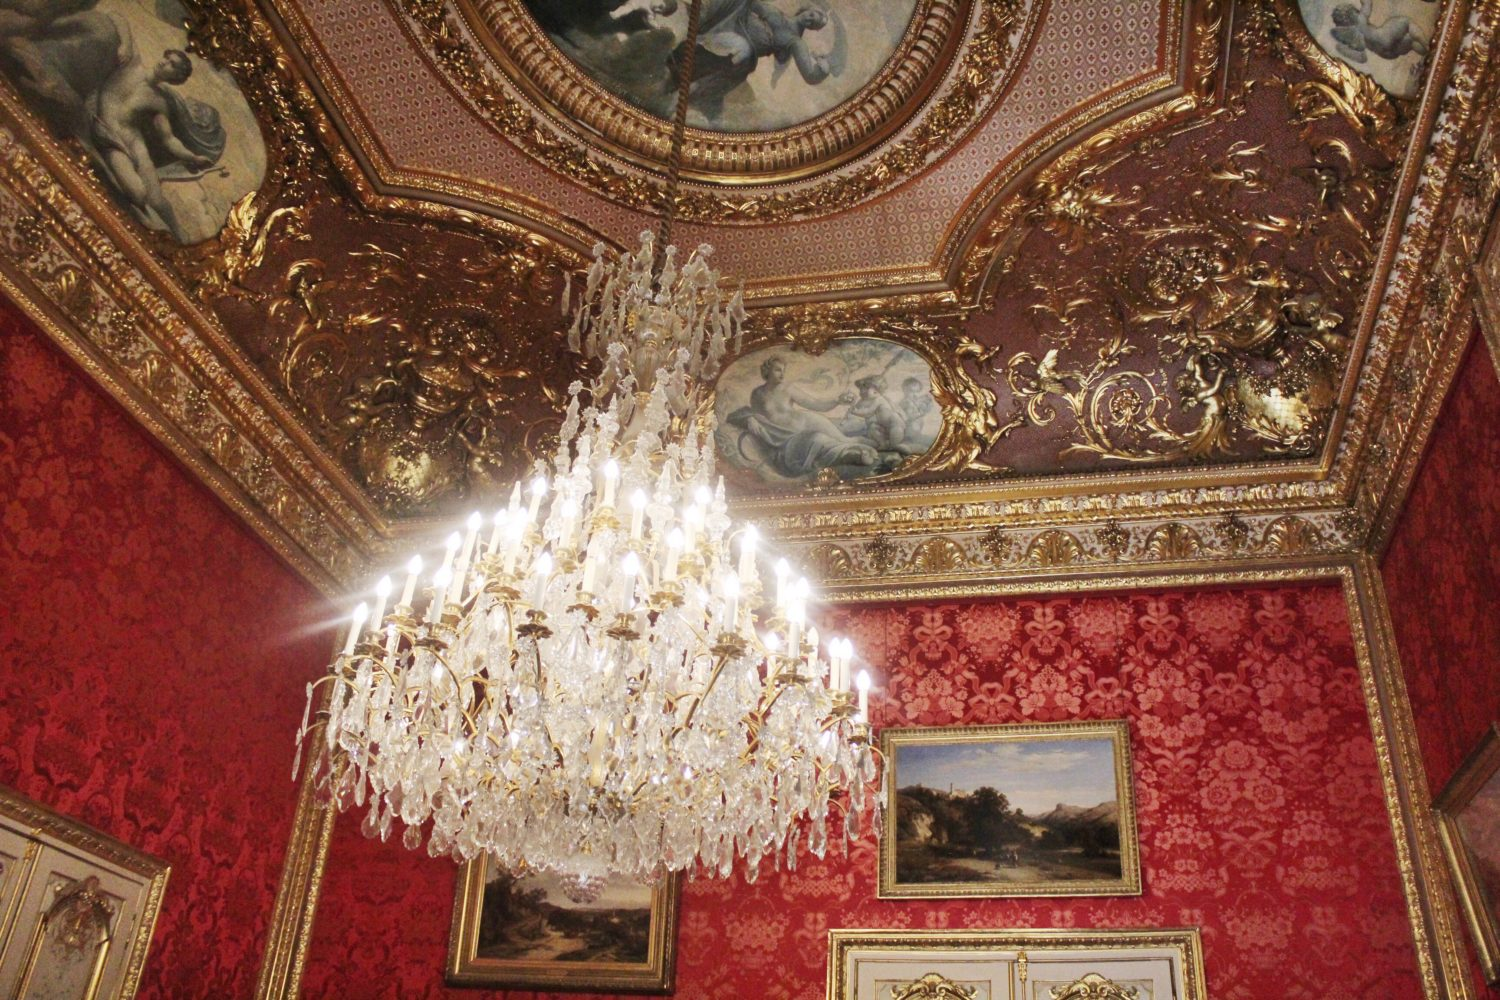 Napoleon III Apartments exhibit